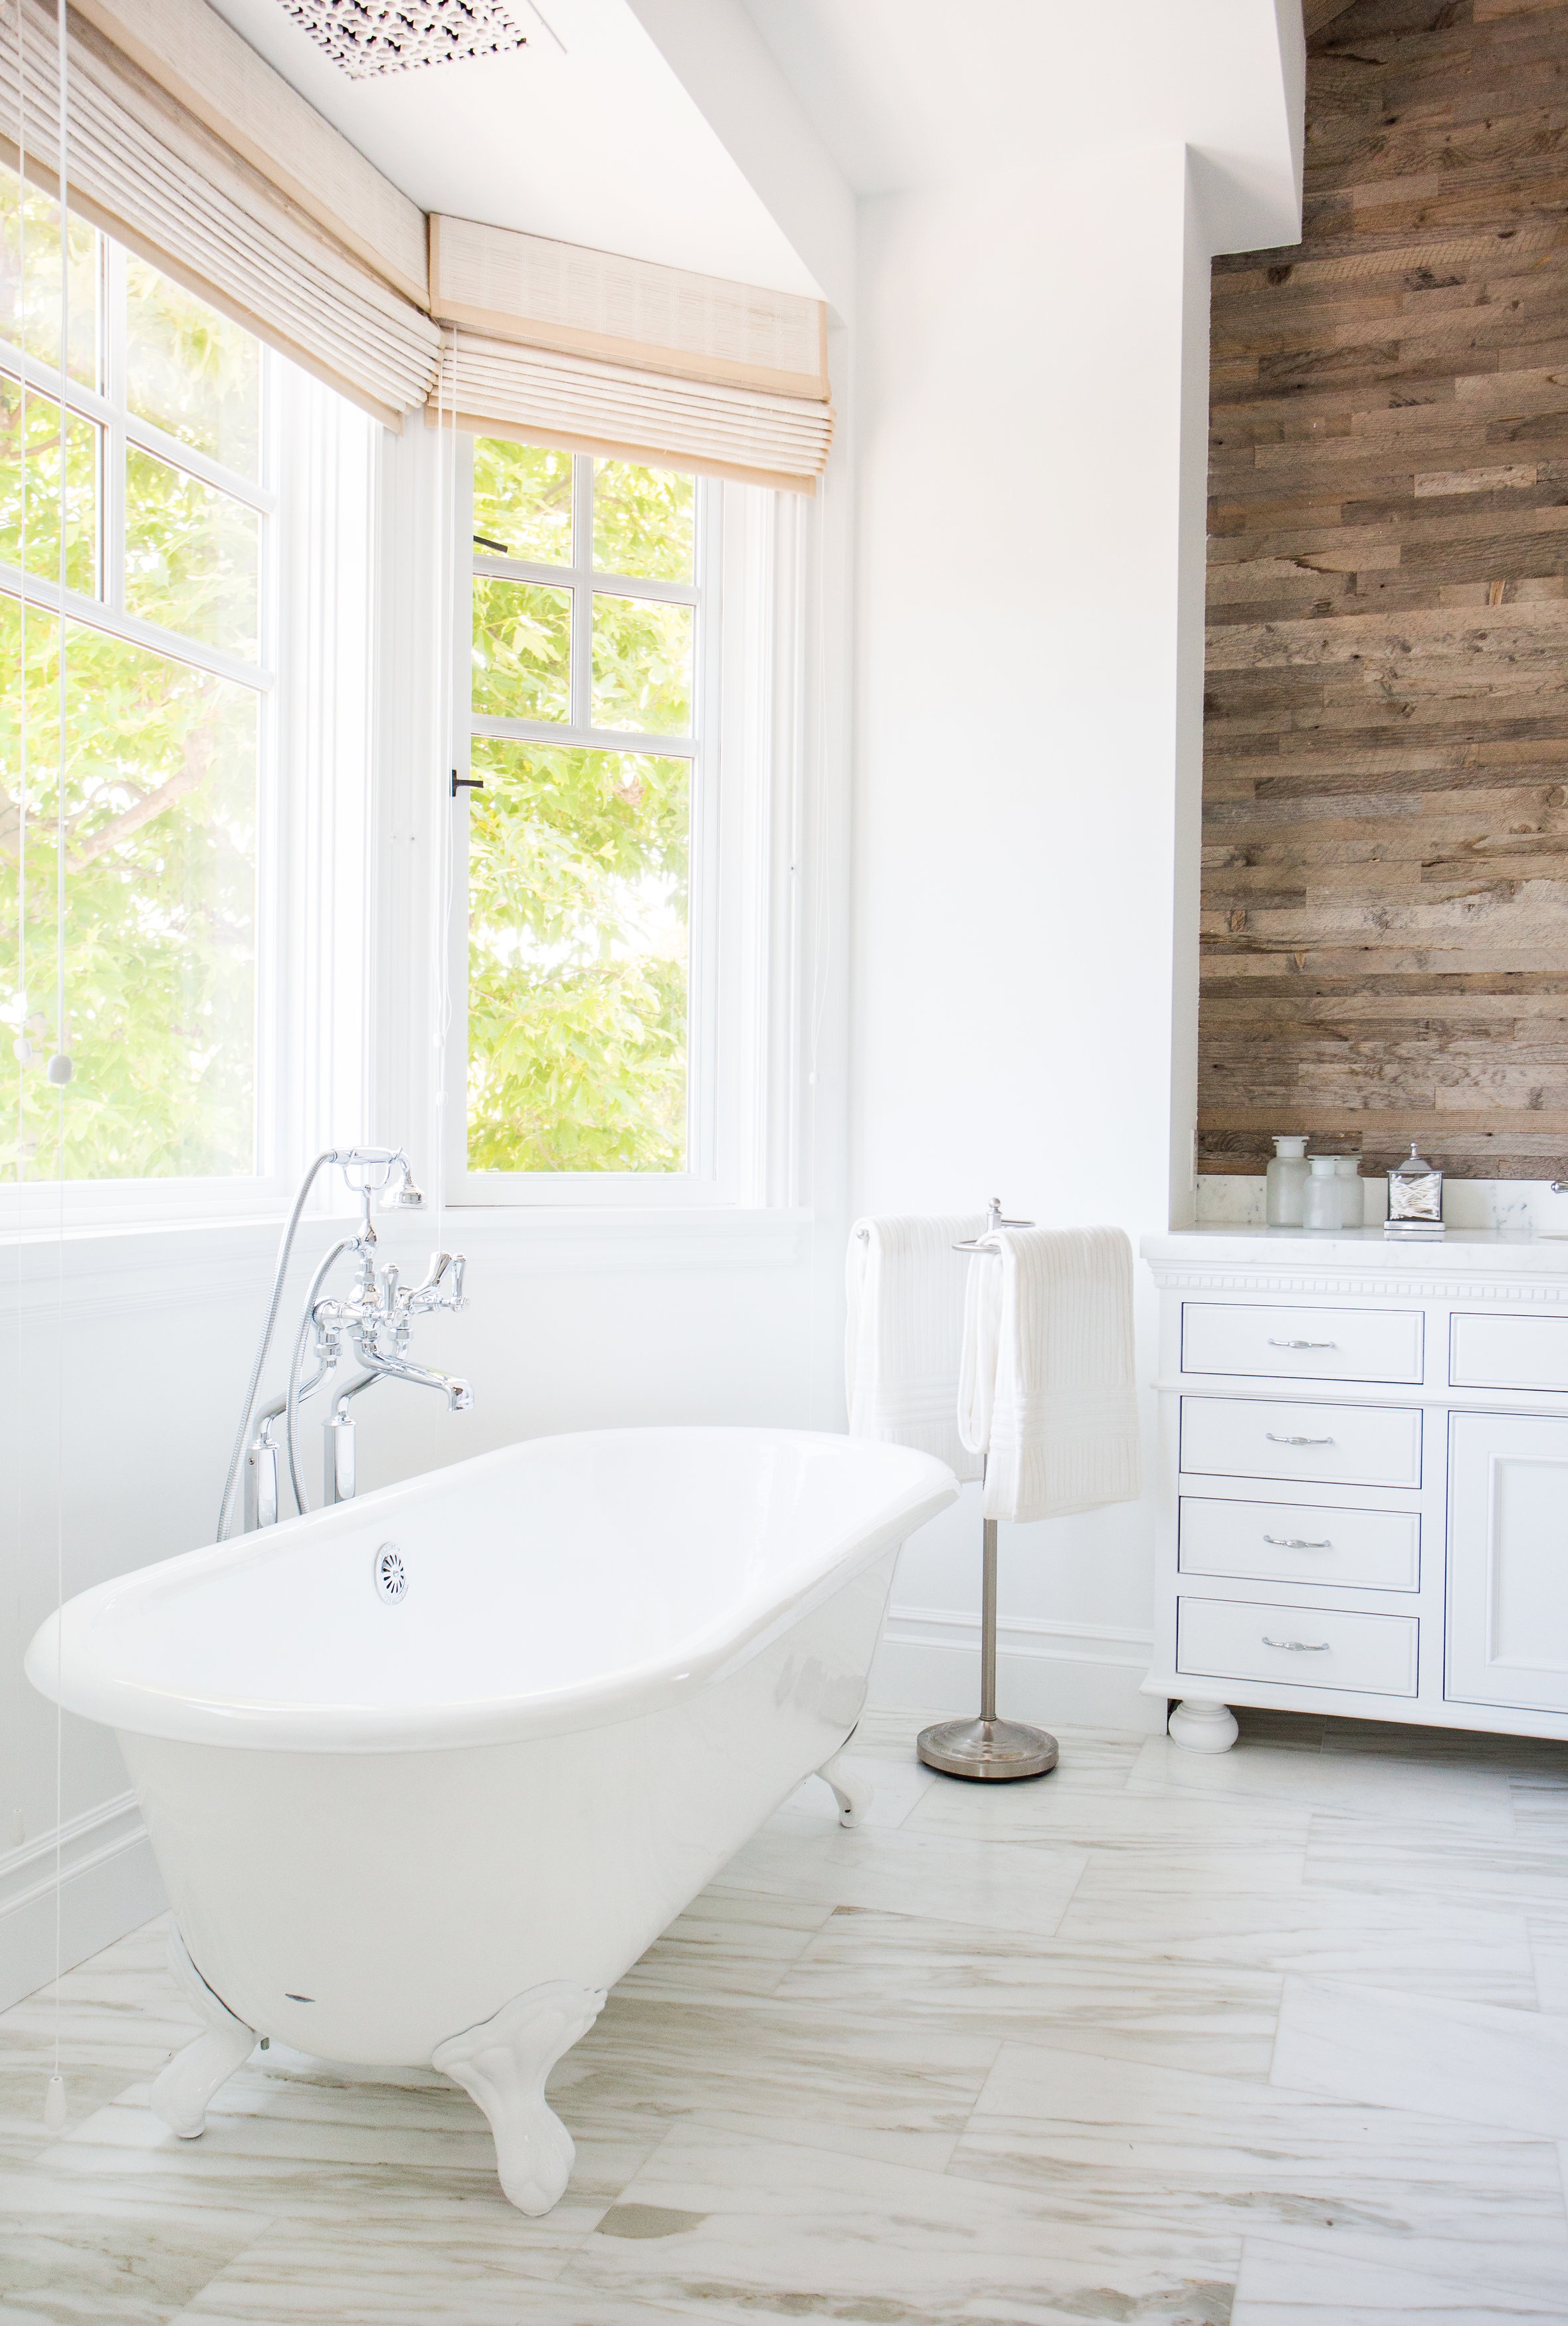 Elegant Clawfoot Tub Brings Classic Element To Luxurious Master Bathroom (Image 19 of 29)